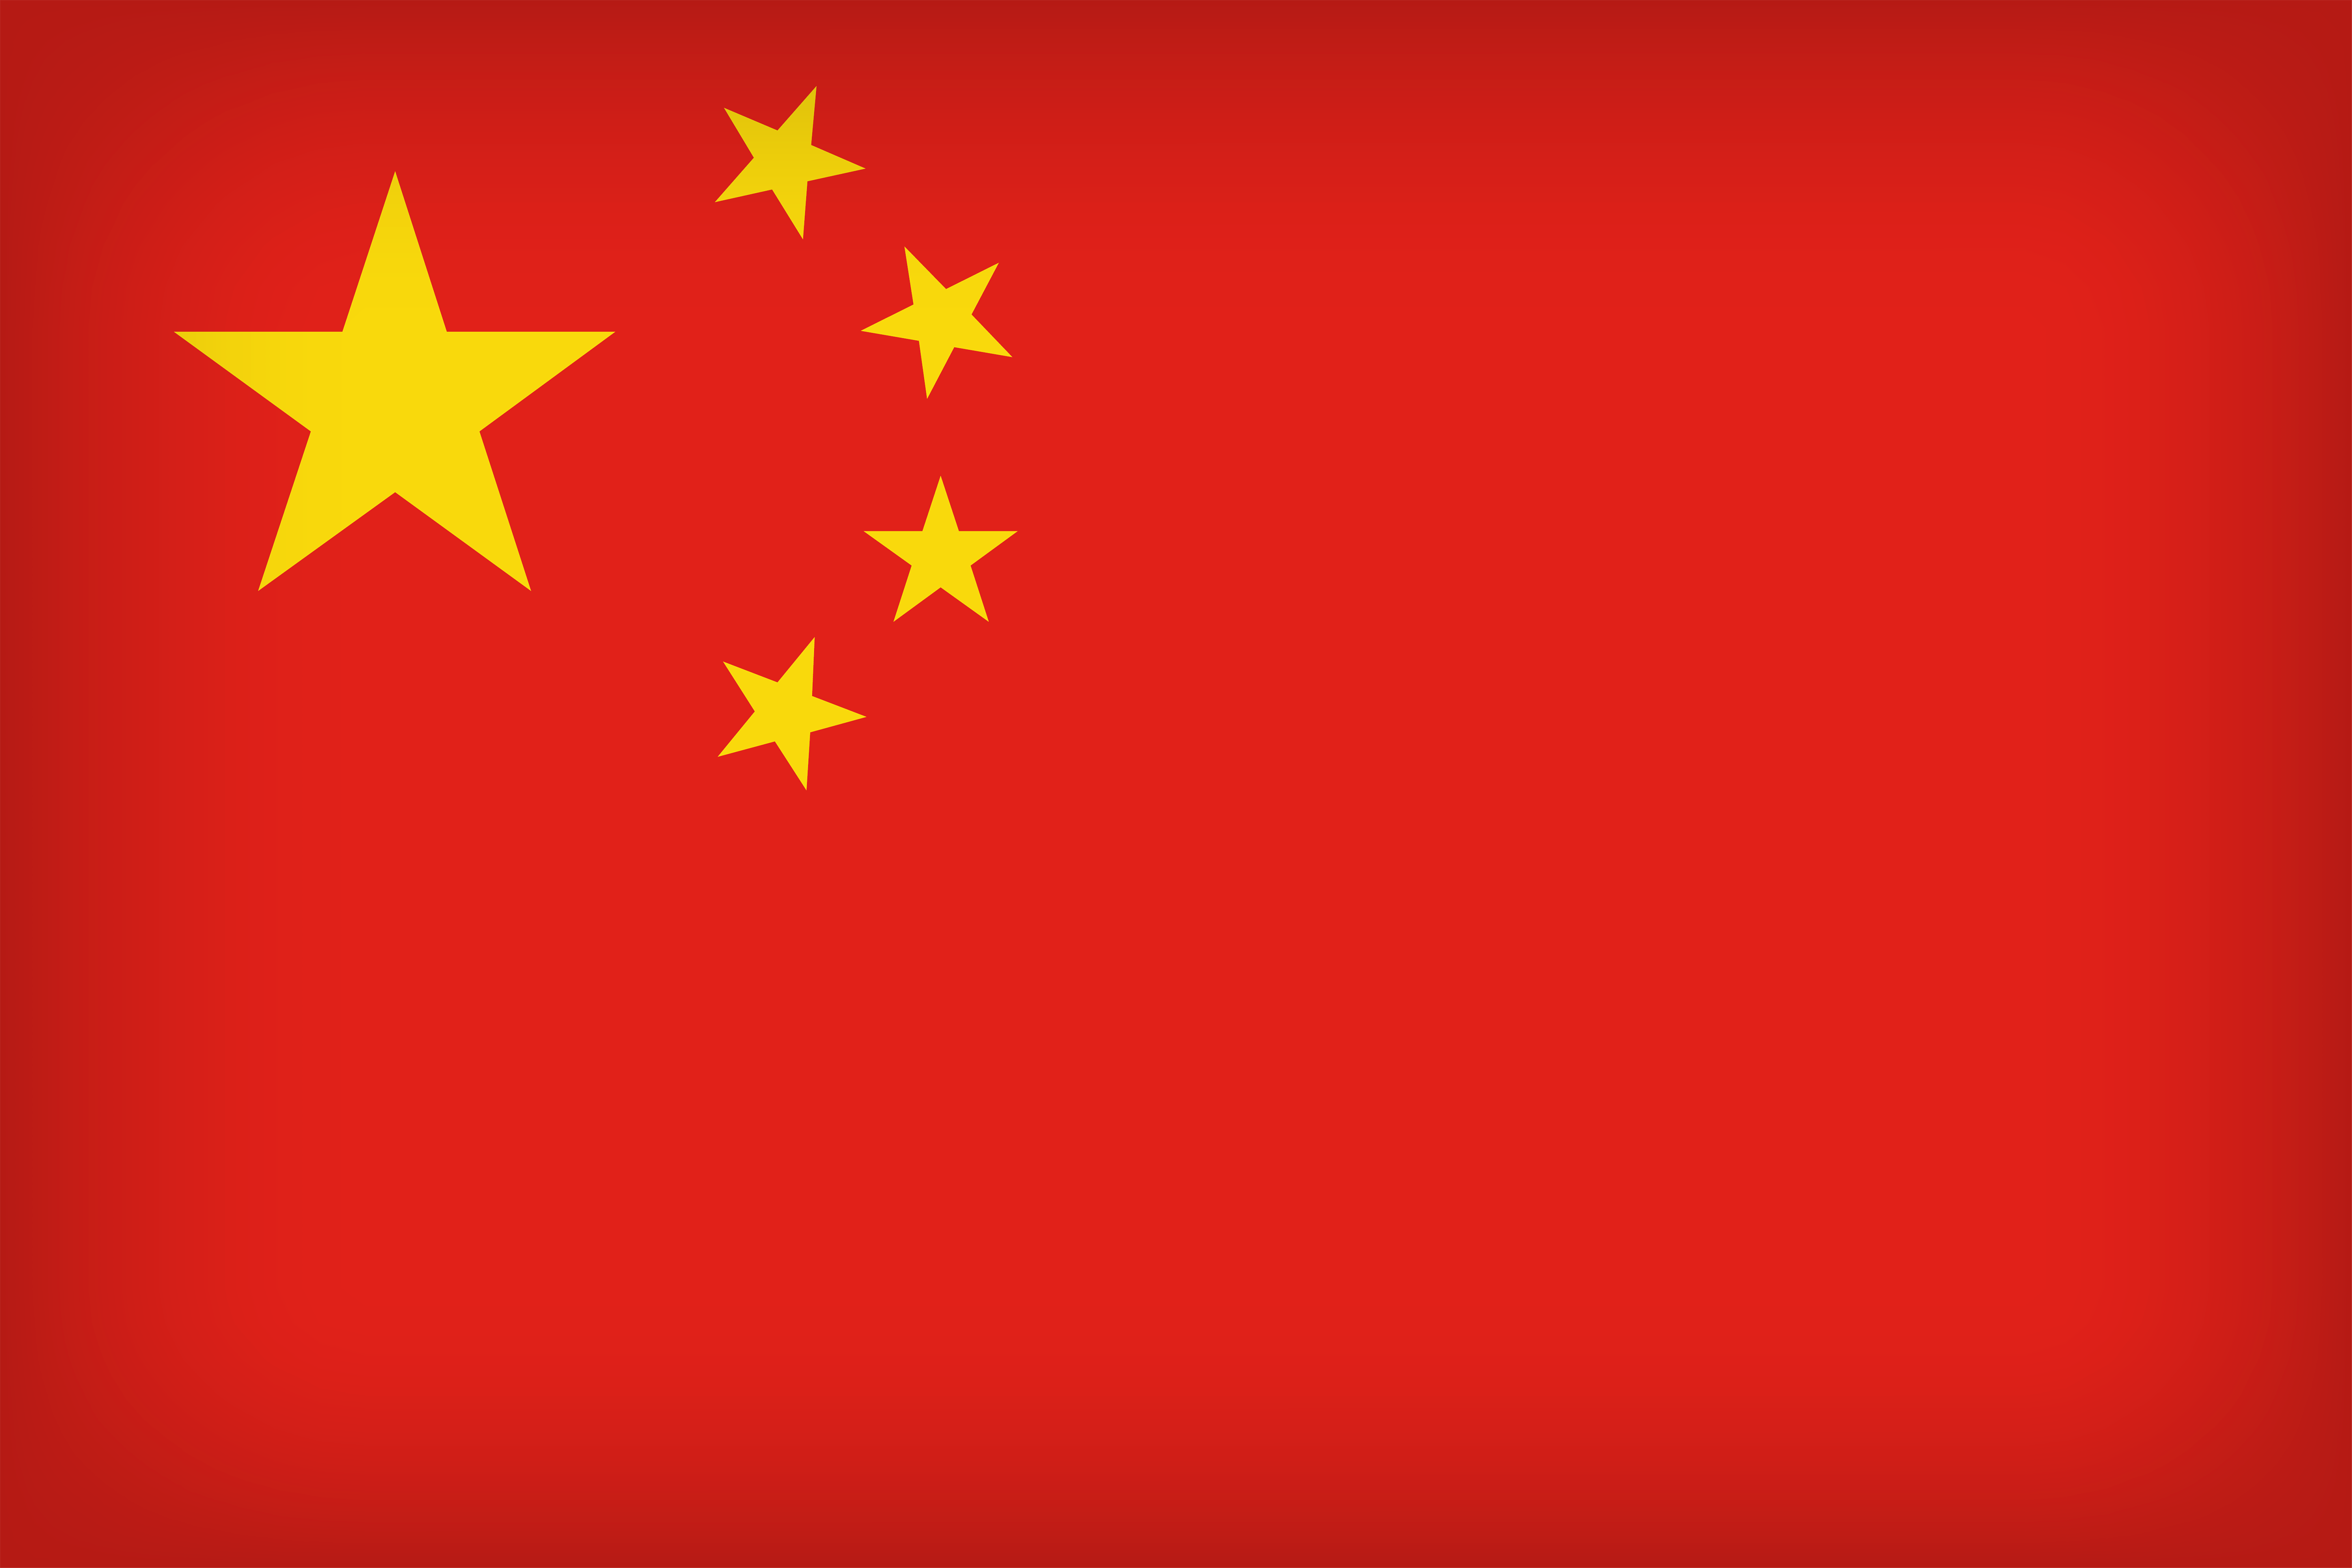 China Large Flag In 2020 Flag Flag Country National Flag